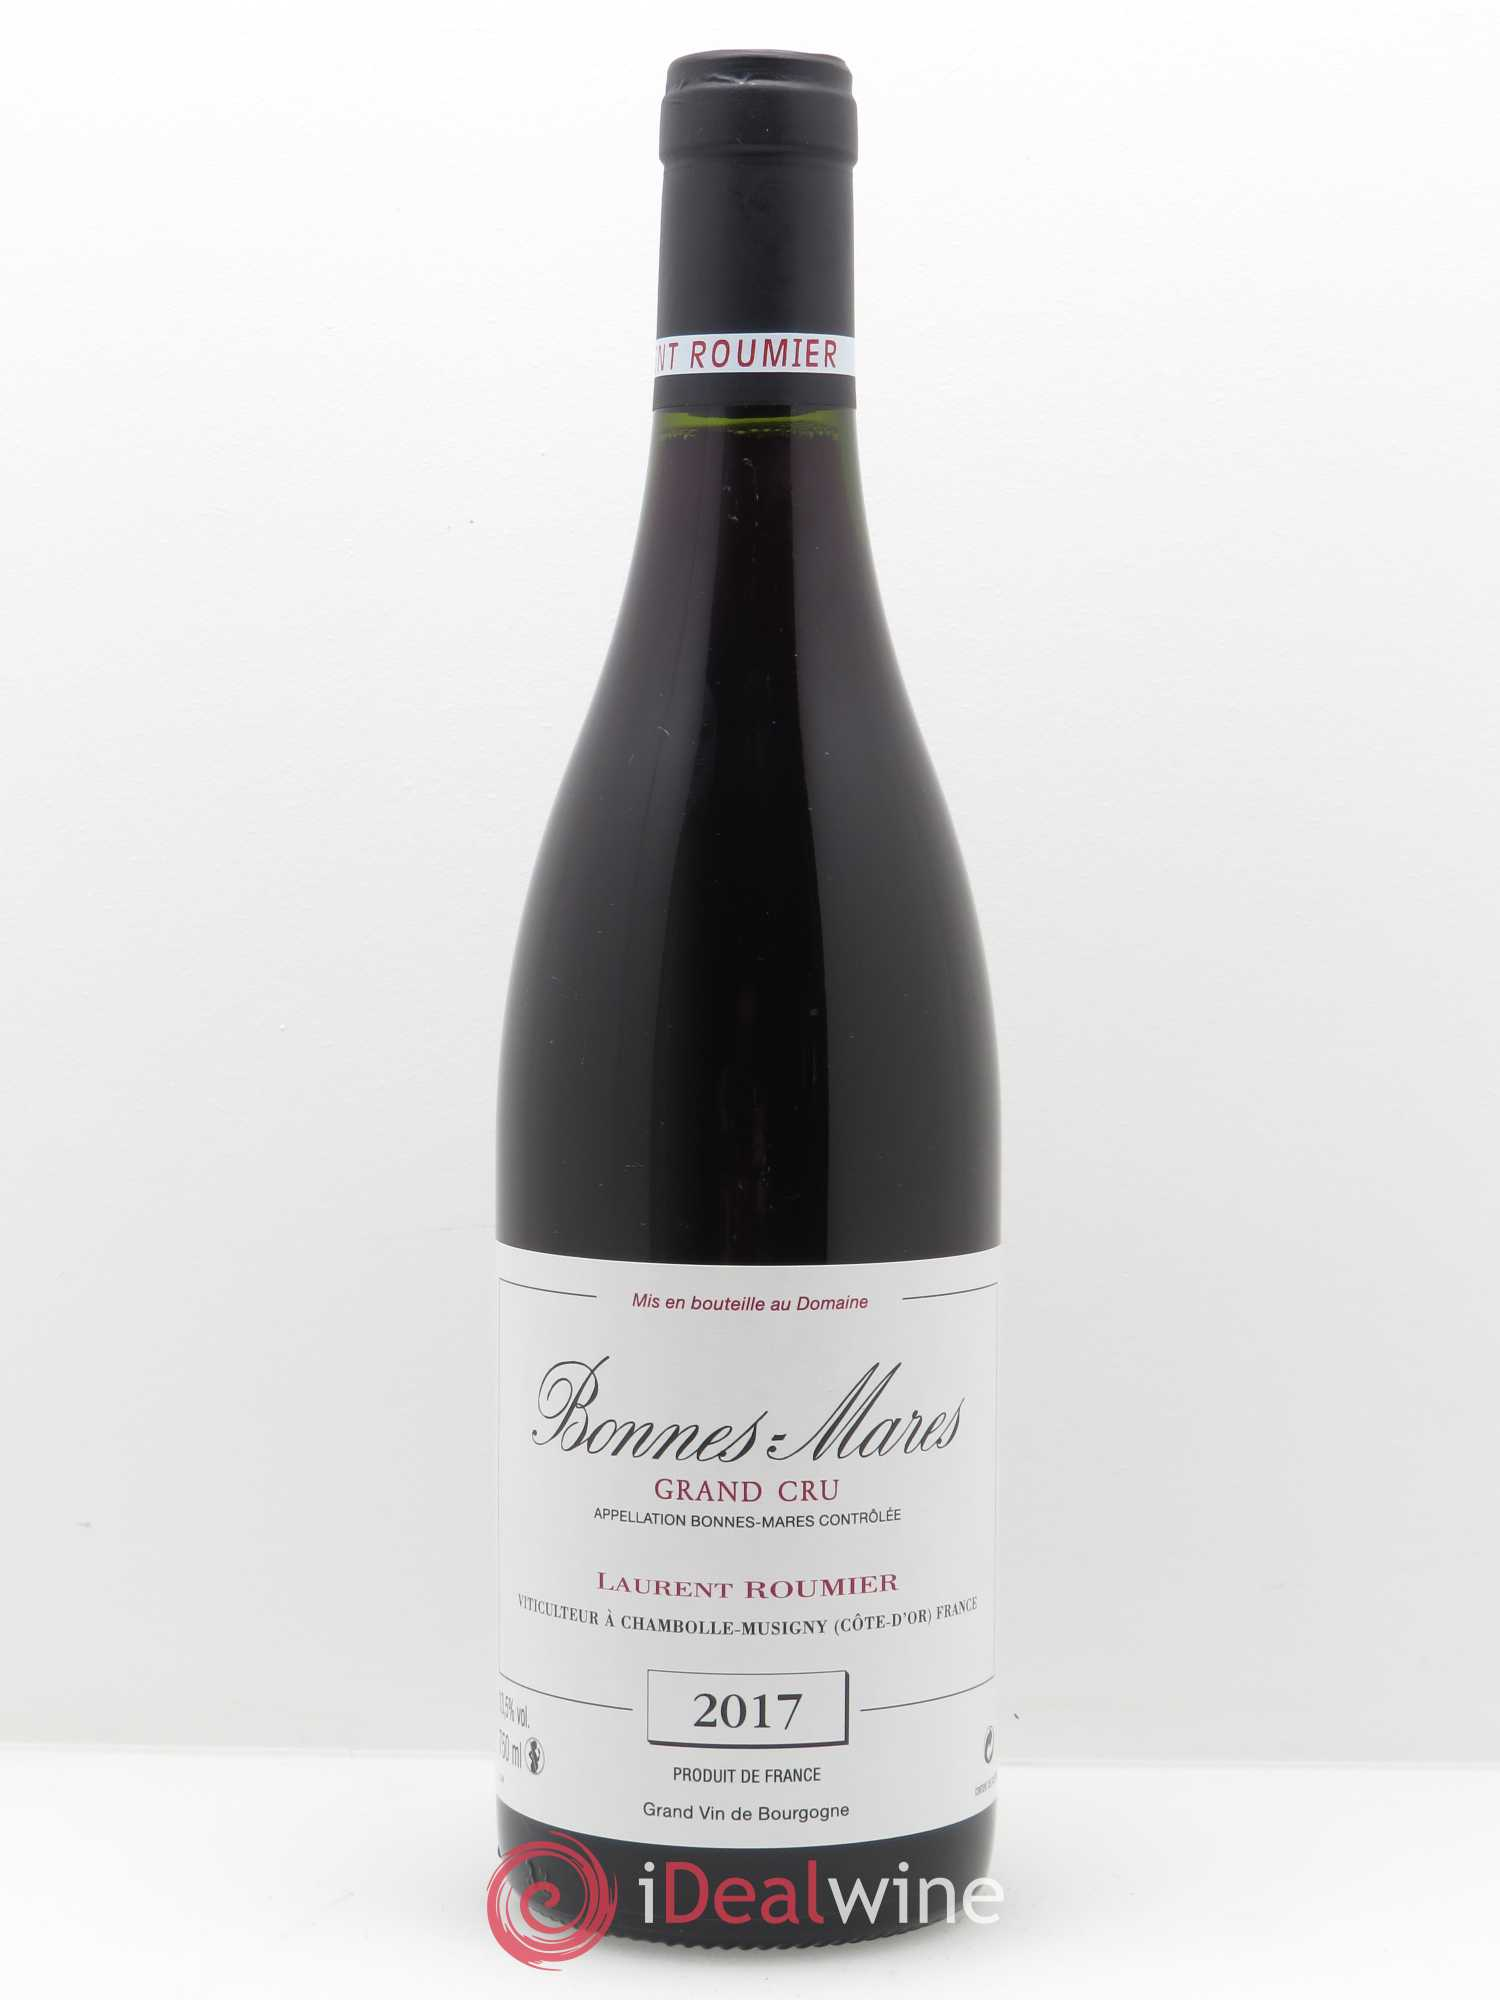 Bonnes-Mares Grand Cru Laurent Roumier  2017 - Lot of 1 Bottle